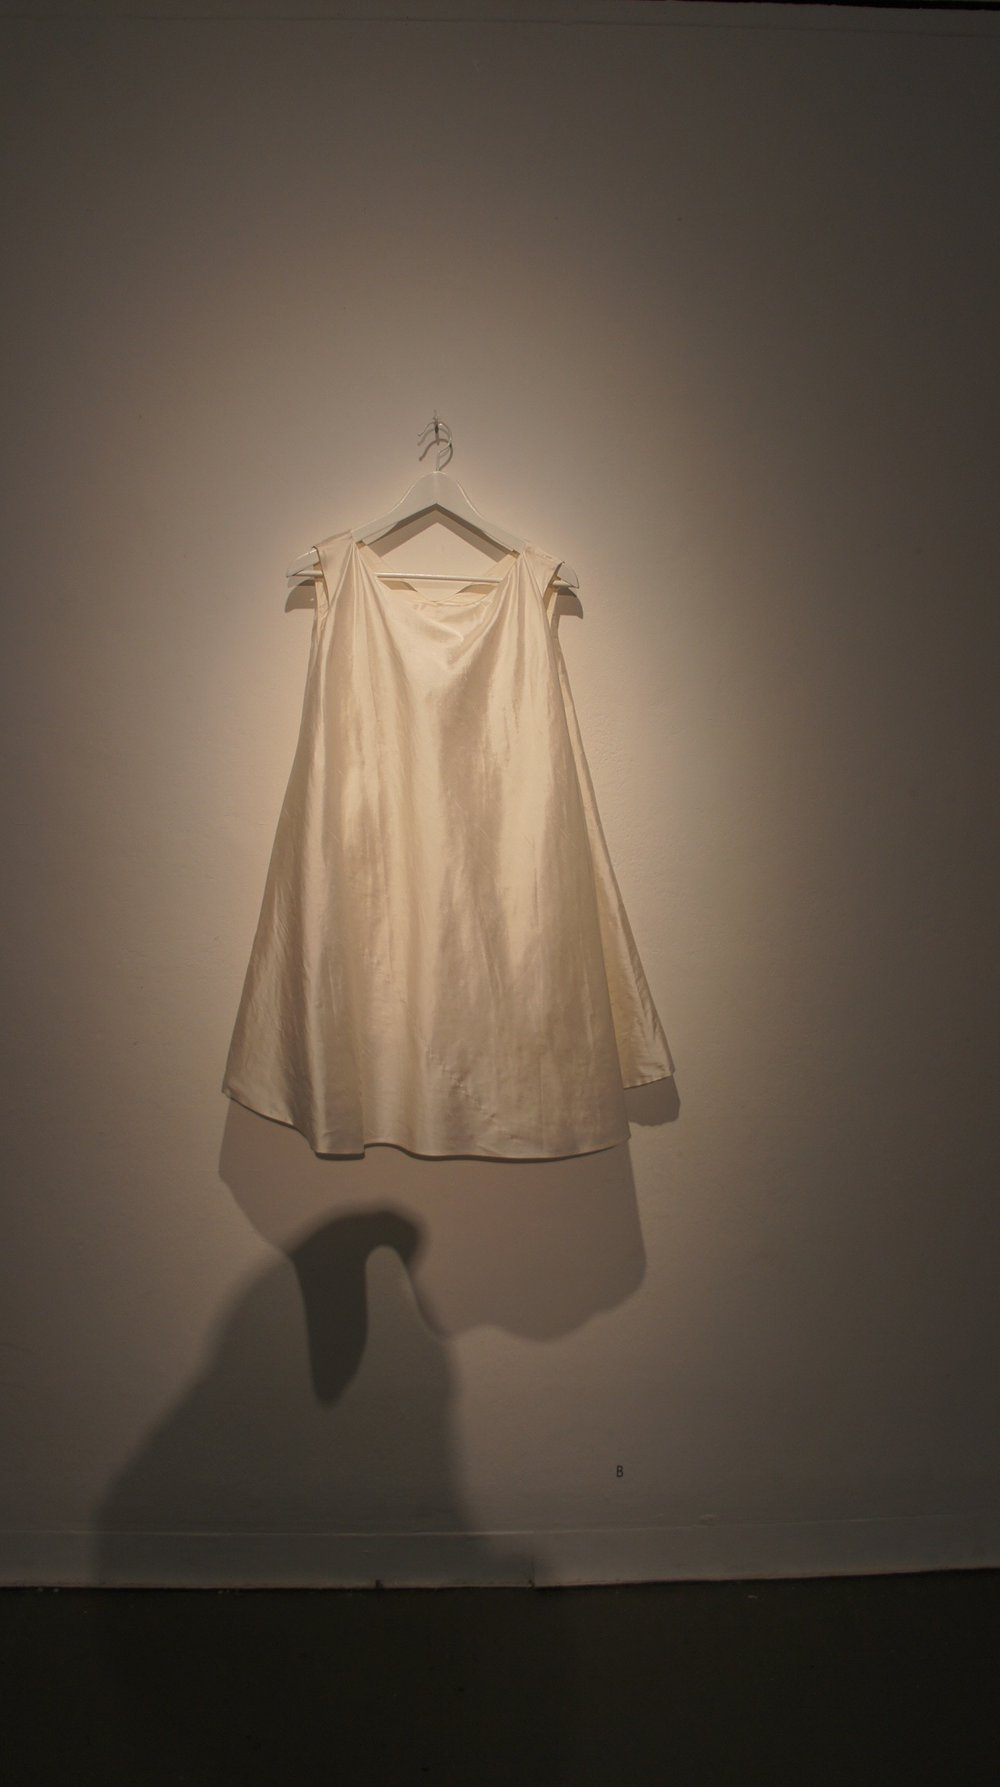 Dress with the Sound of Its Own Making